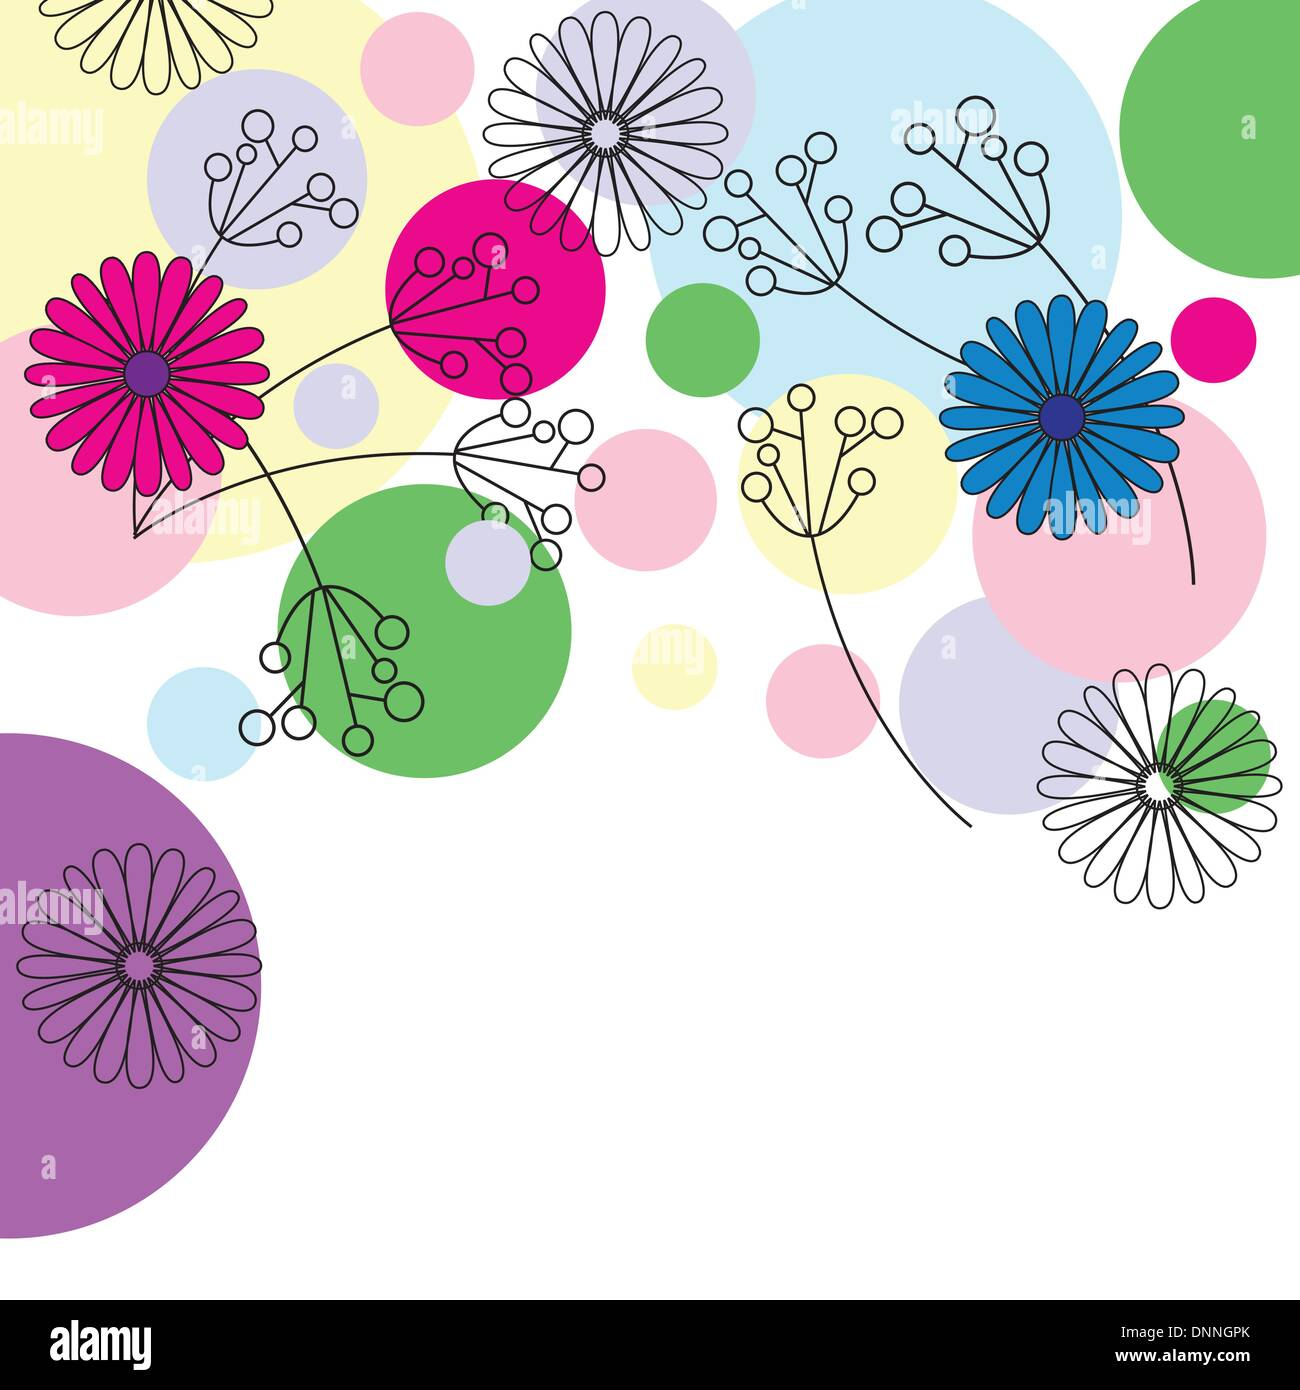 Cute background on festivity occasion - Stock Image